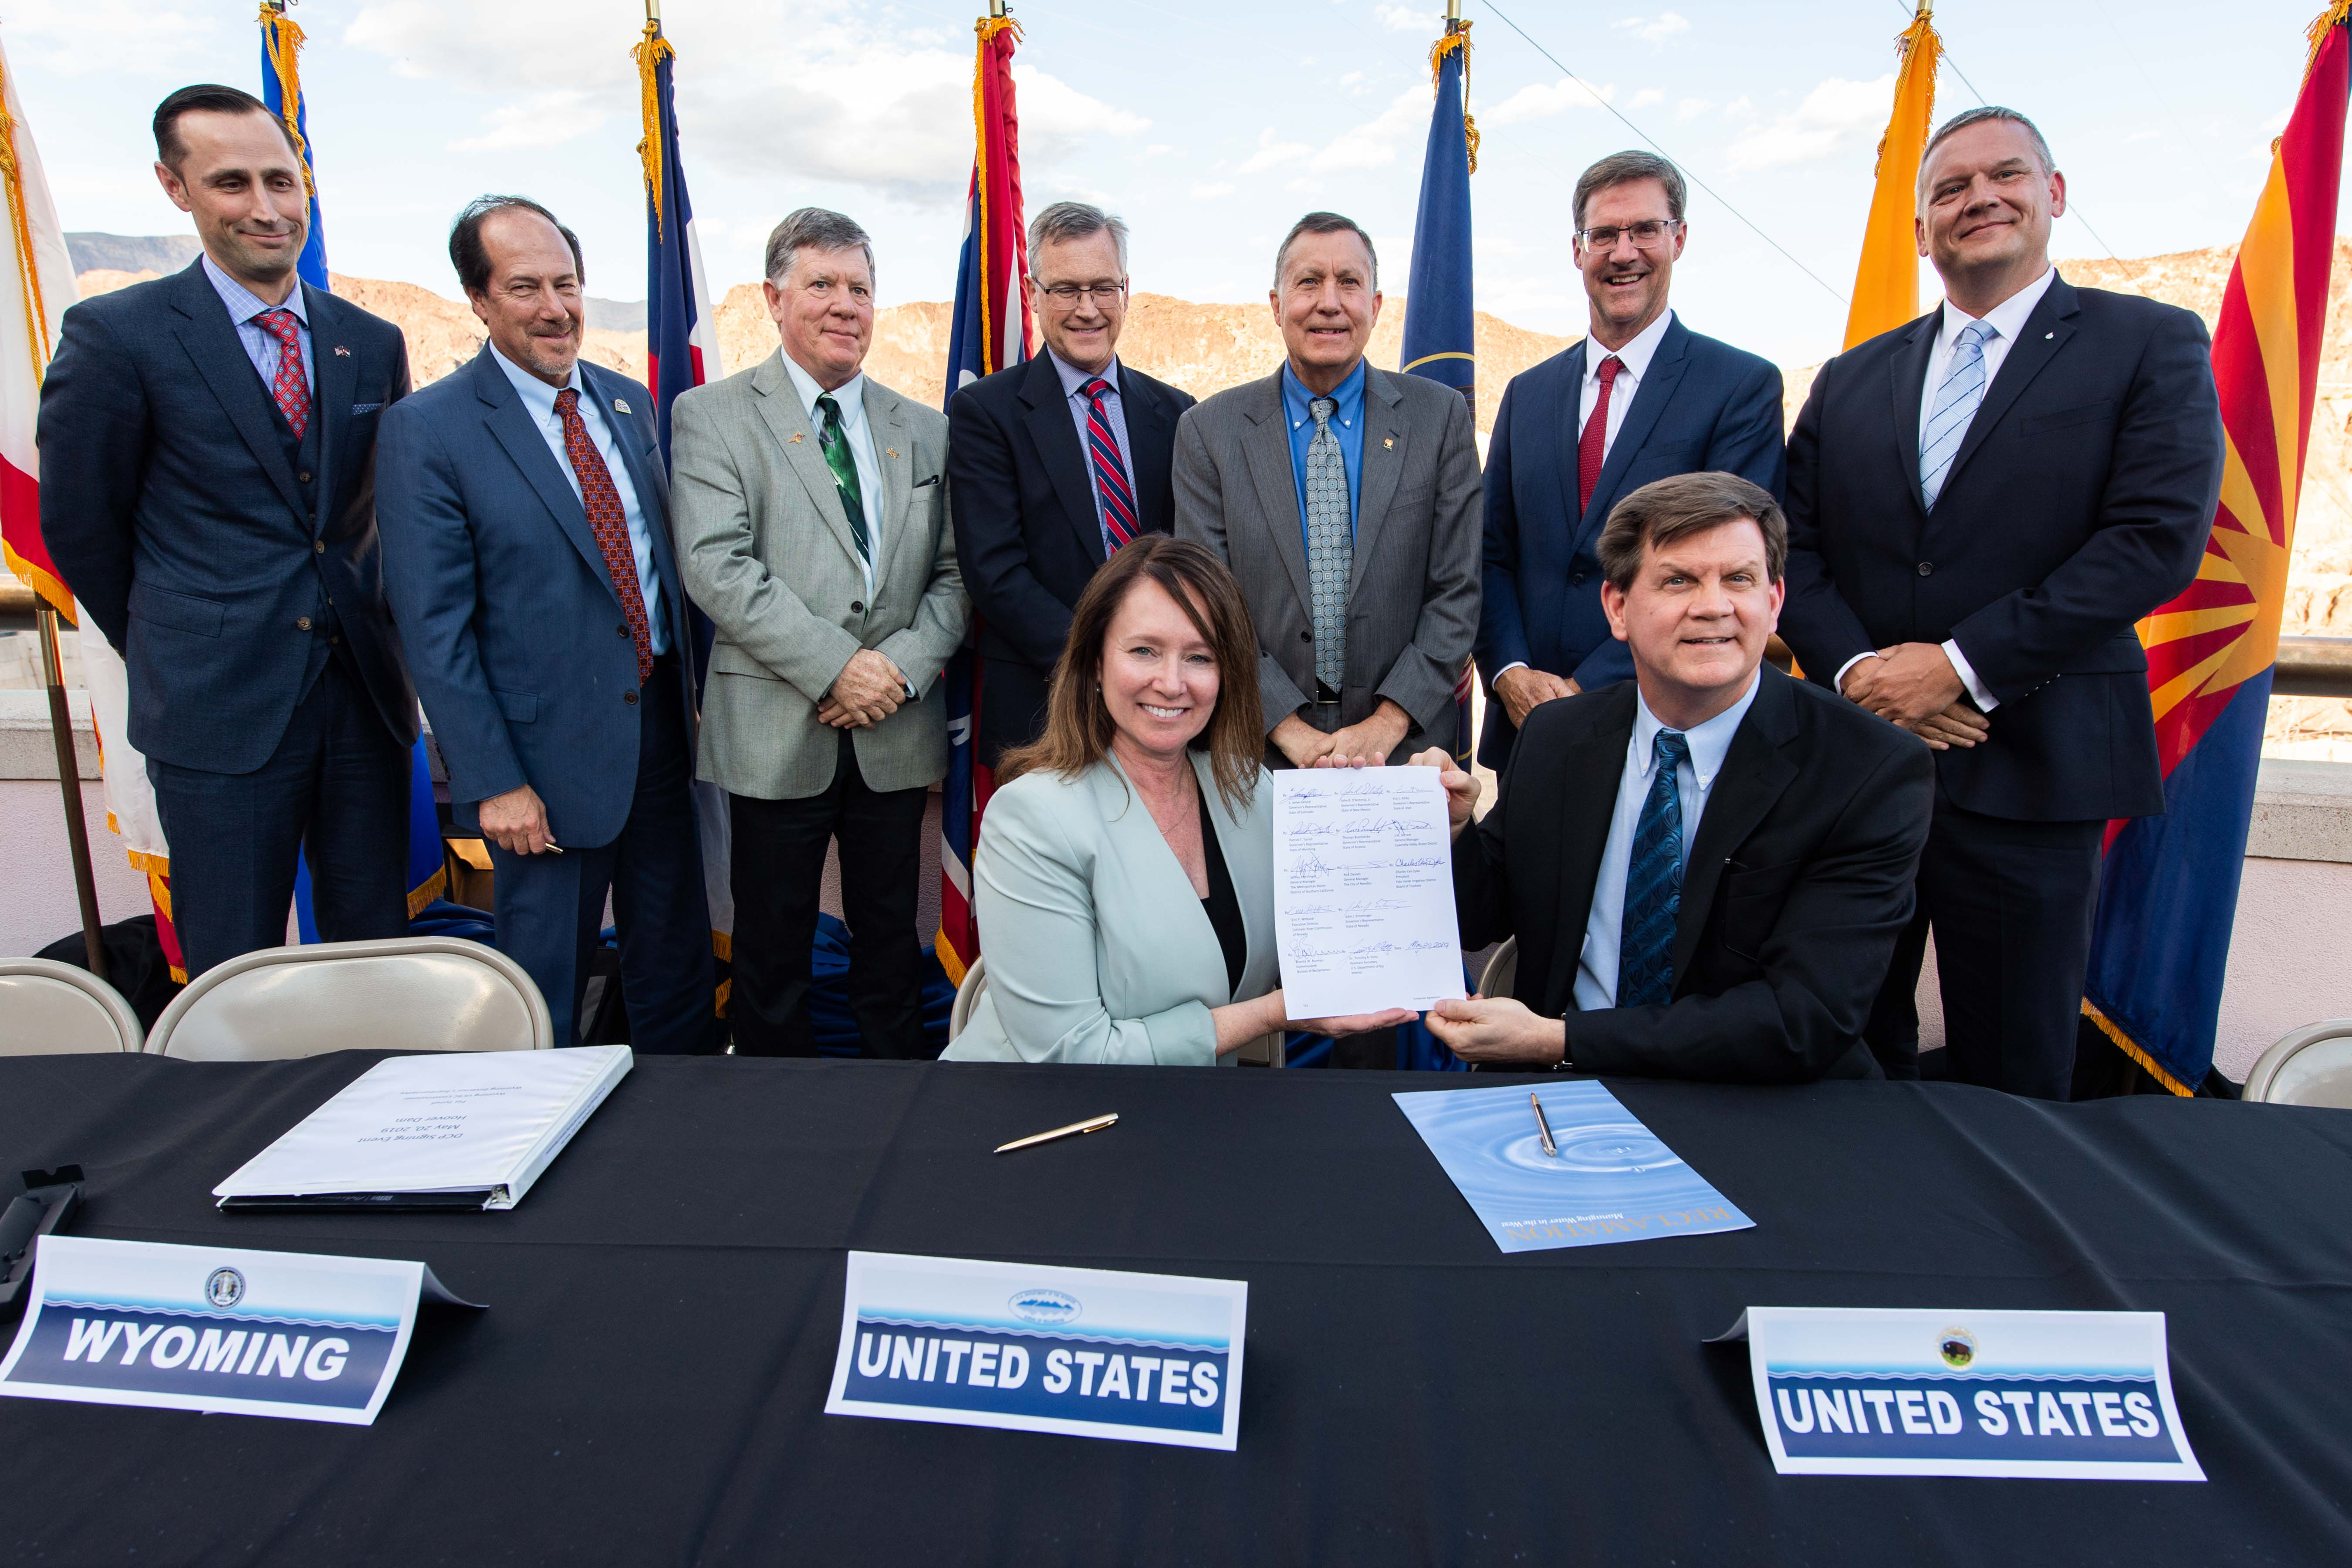 The Department of the Interior, Bureau of Reclamation and representatives from all seven Colorado River Basin states gathered at Hoover Dam in Boulder City, Nevada on May 20, 2019 to sign completed drought contingency plans for the Upper and Lower Colorado River basins. These completed plans are designed to reduce risks from ongoing drought and protect the single most important water resource in the western United States.